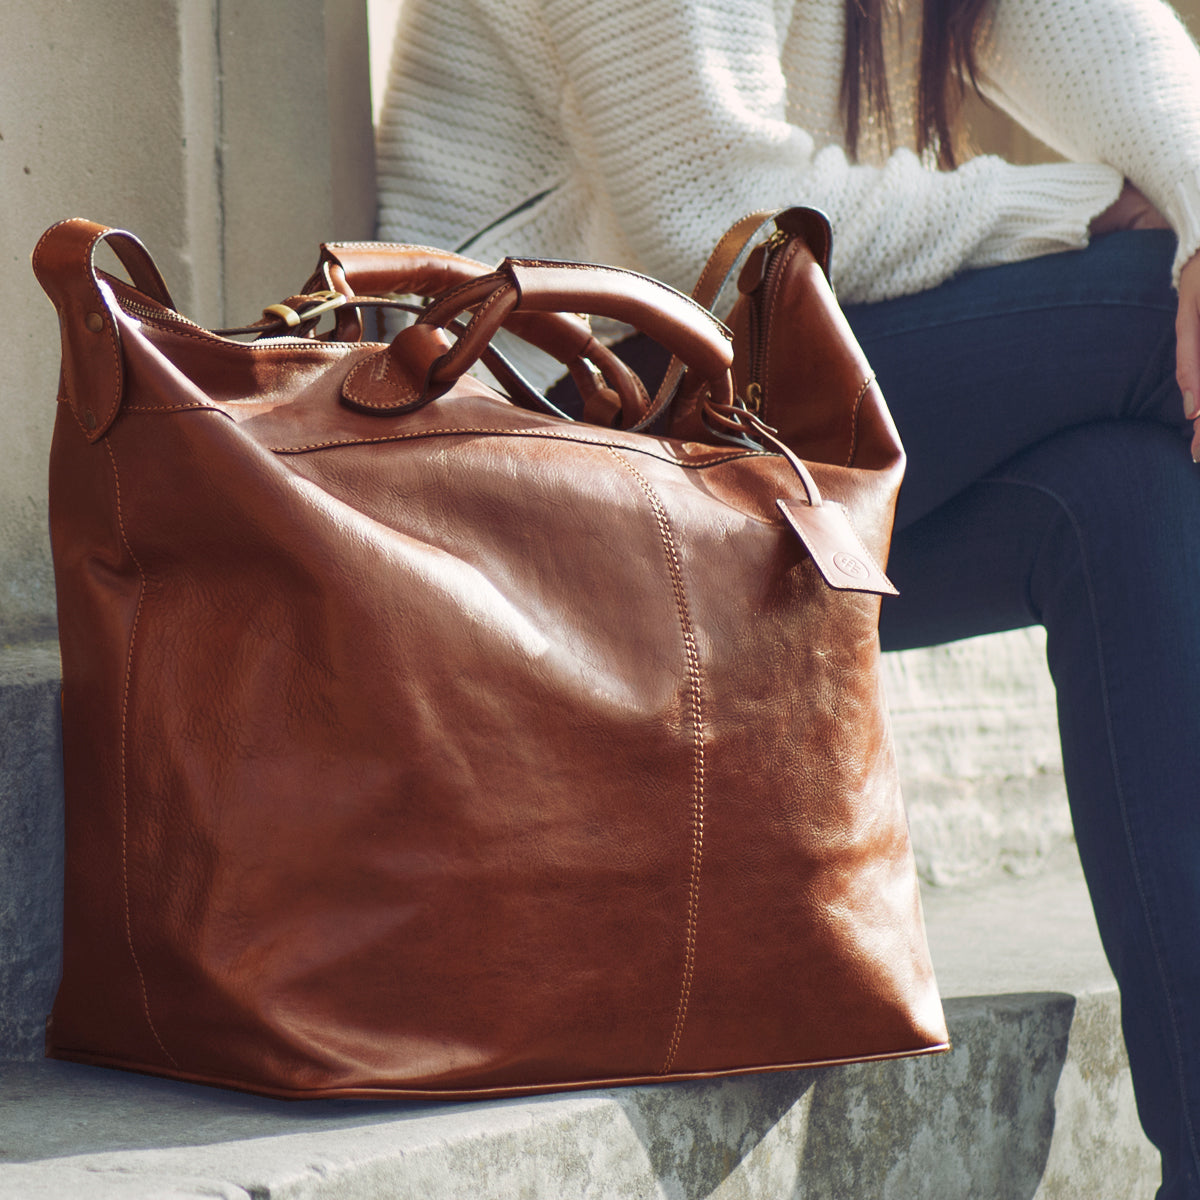 Image 8 of the 'Fabrizio' Chestnut Veg-Tanned Leather Holdall